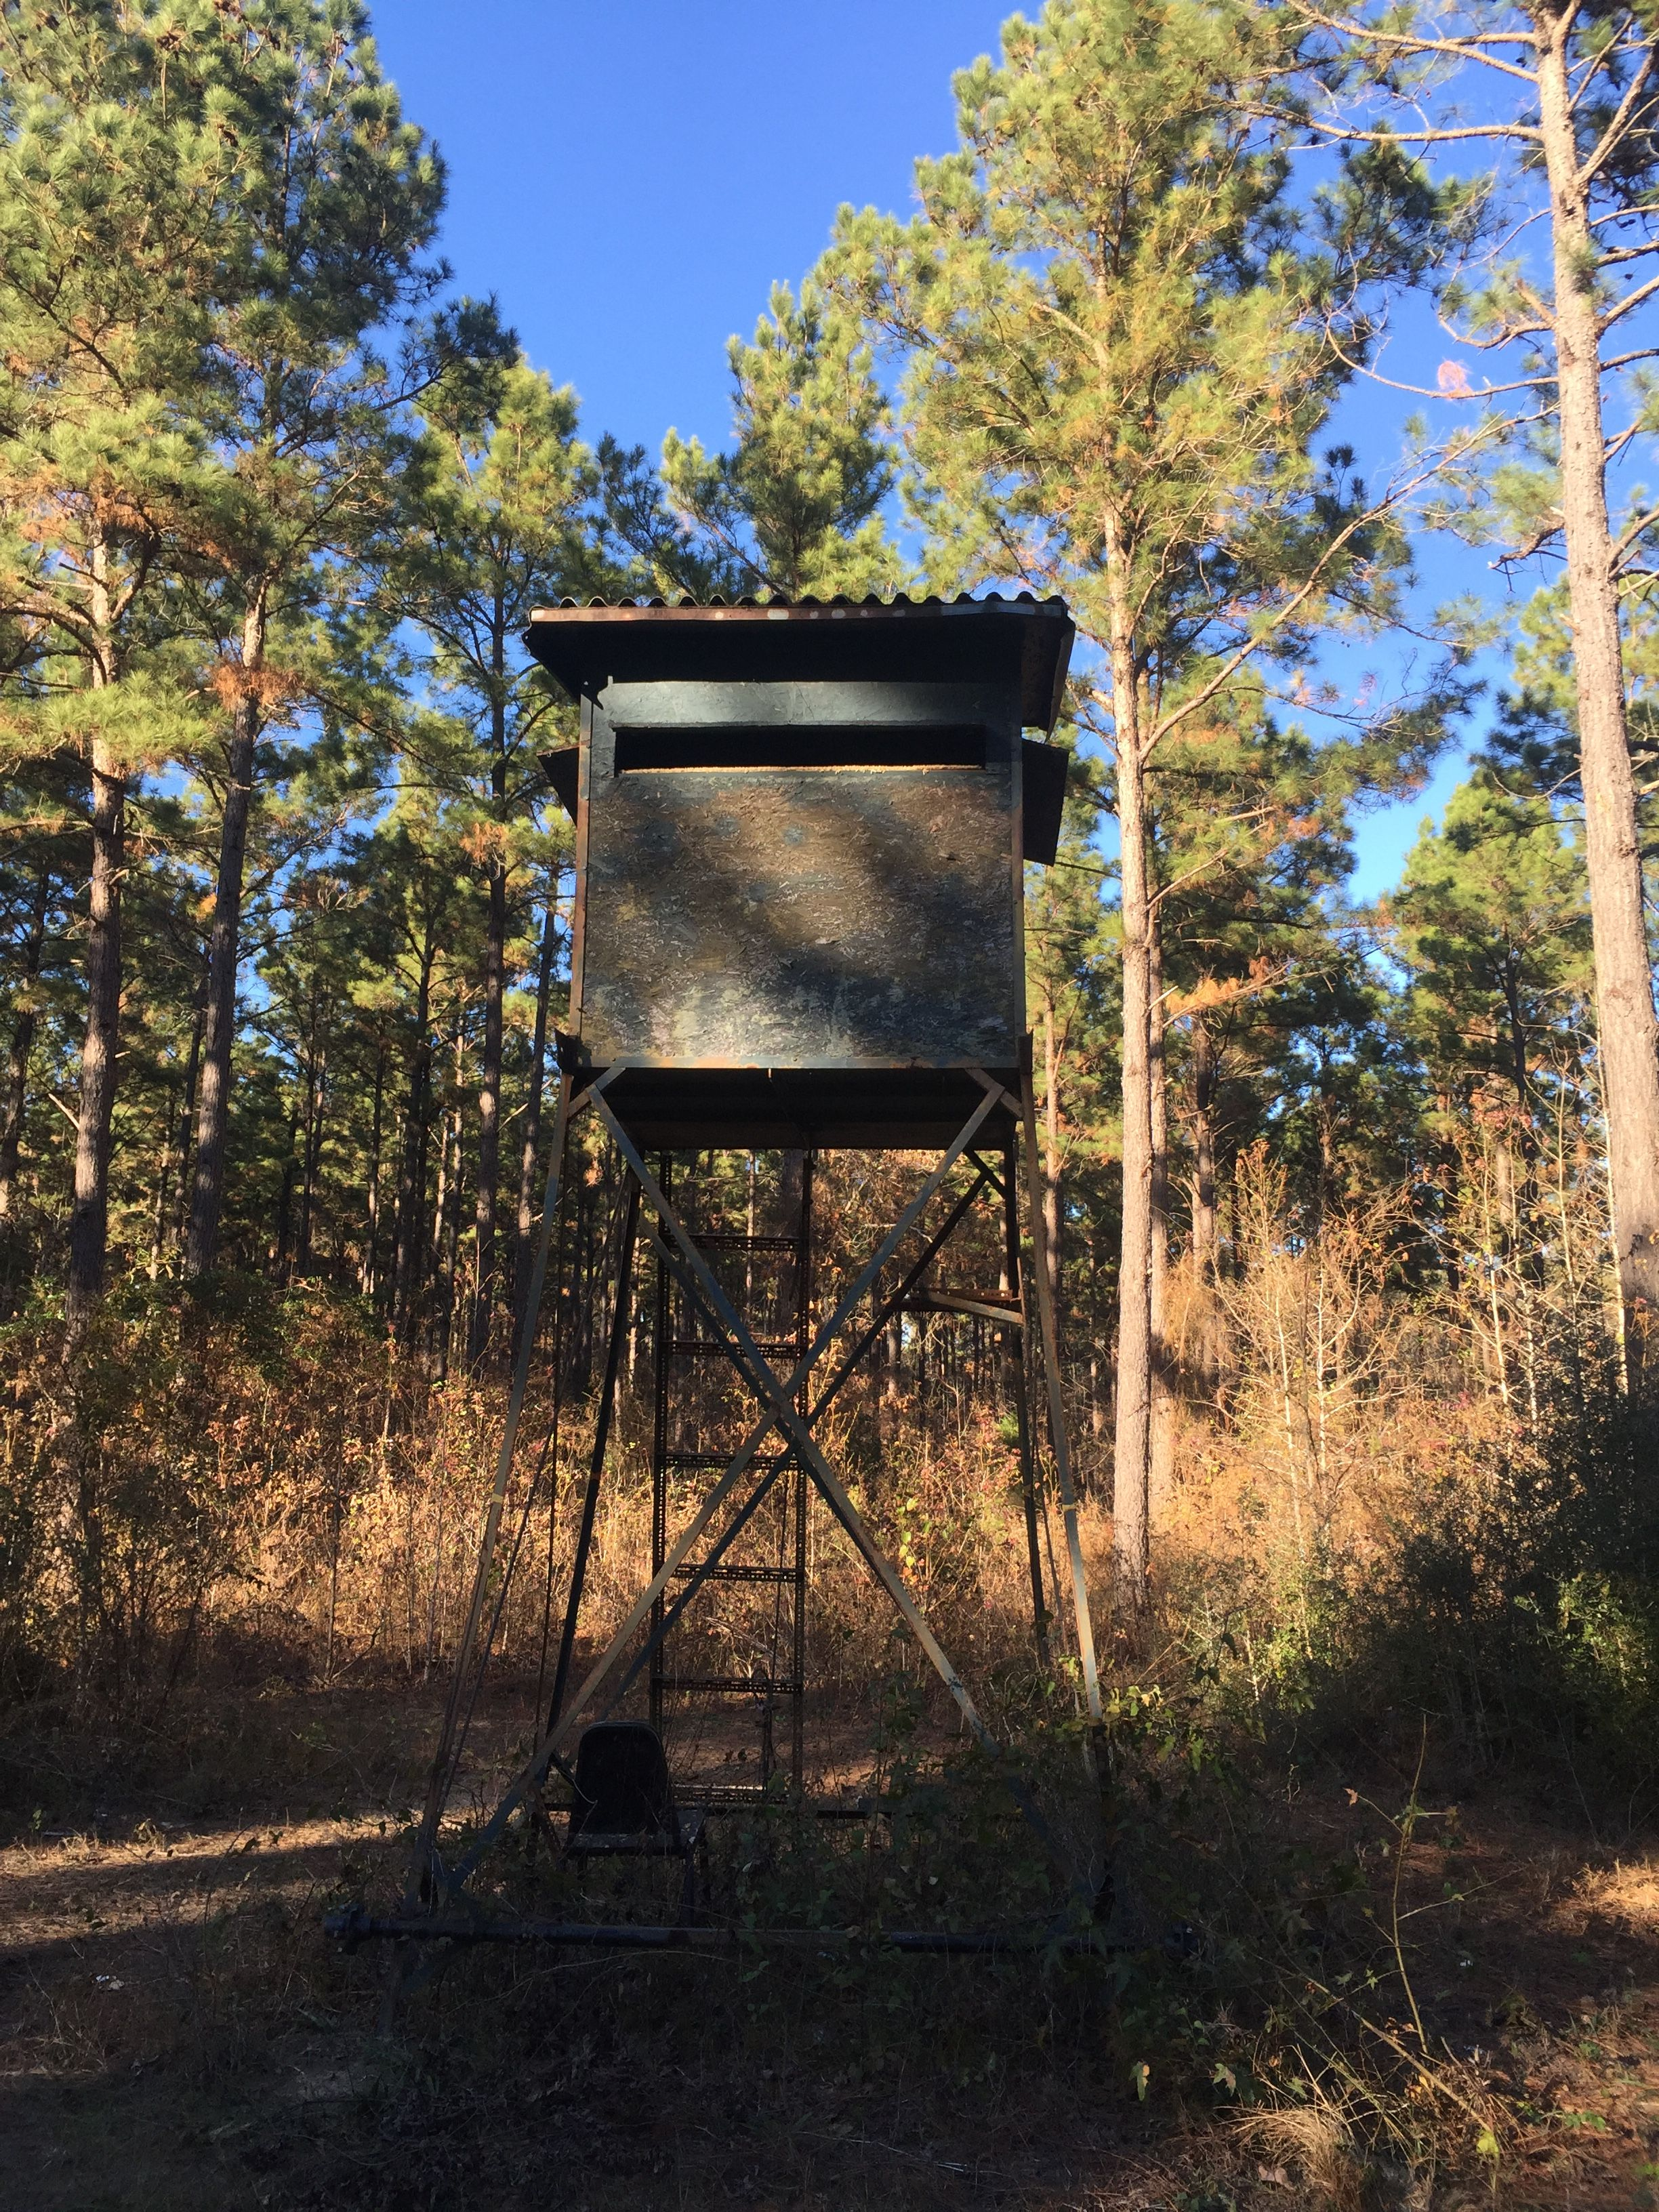 East Texas Deer Stand 5x5 Box With 10 Foot To Floor Made From 1 1 2 Angle Iron Welded Anchored To Ground With Center Auger And 5 16 Deer Stand Deer Grounds